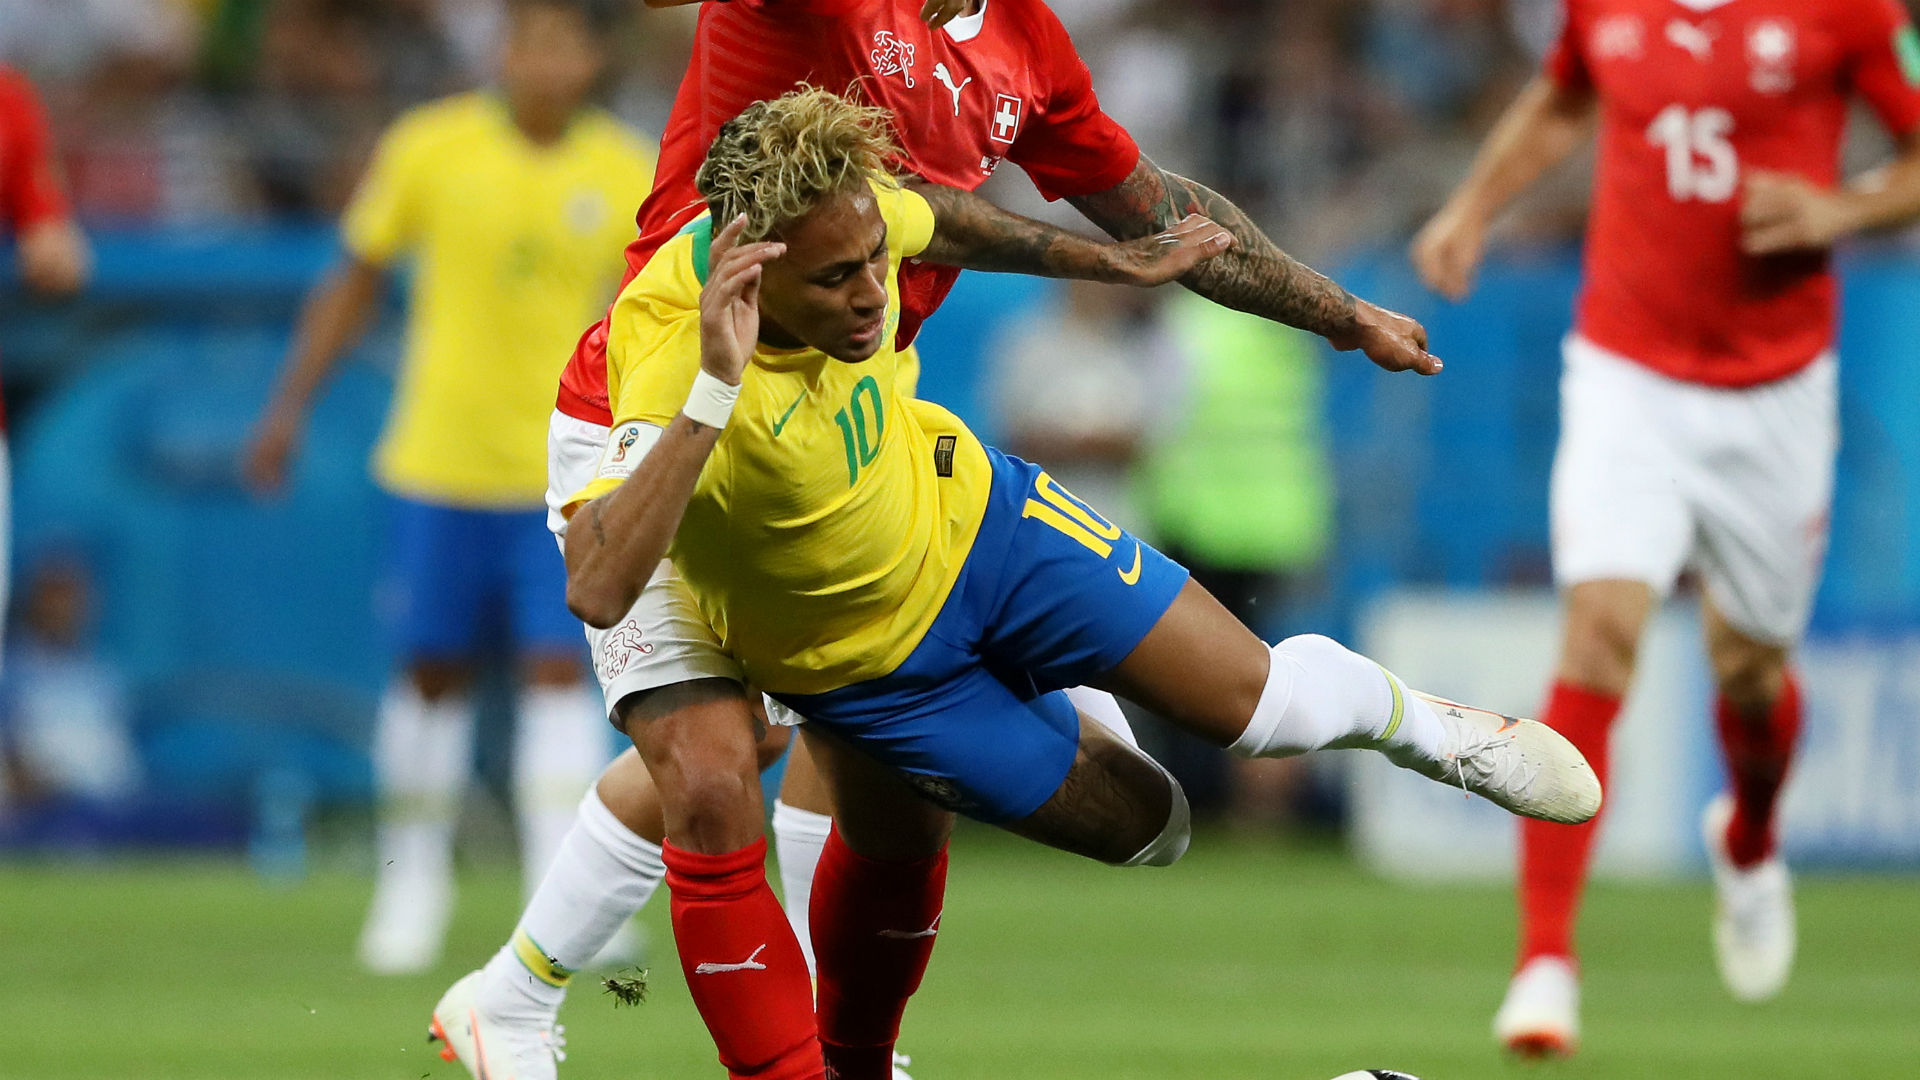 Neymar's petulant behaviour with referees could prove costly for Brazil star